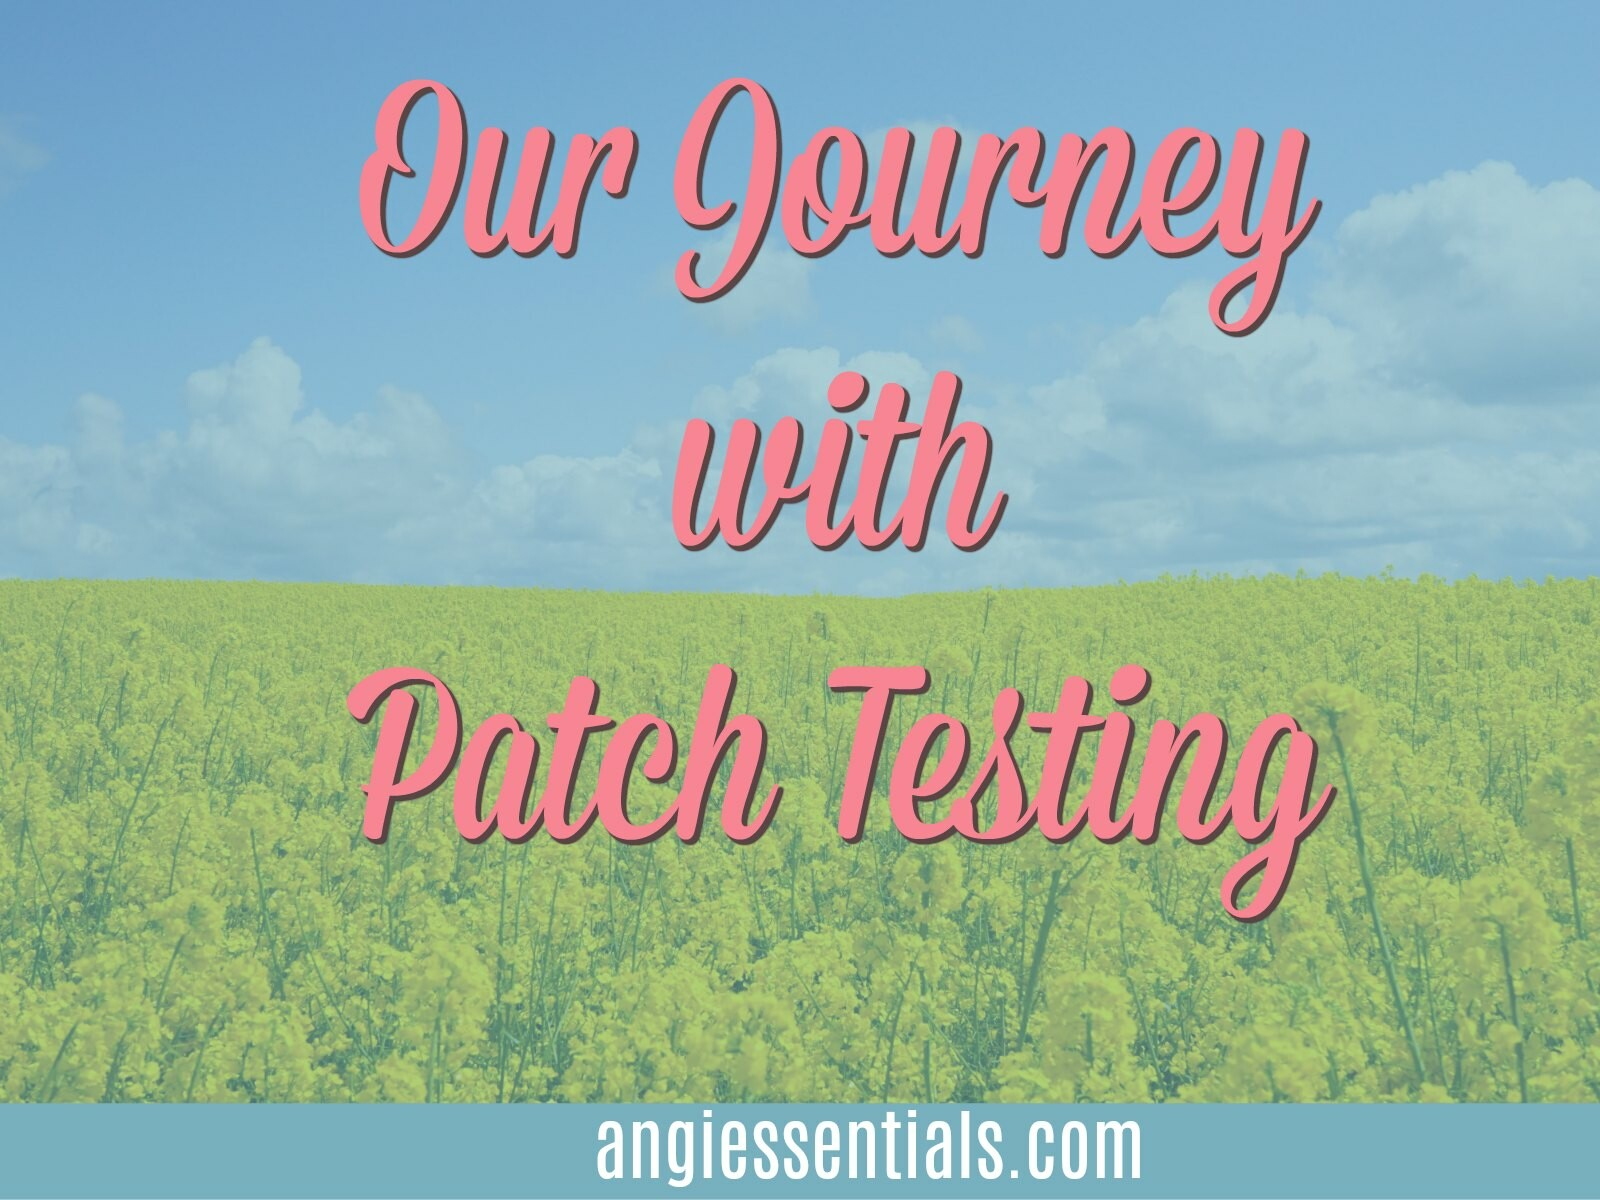 Our Journey With Patch Testing